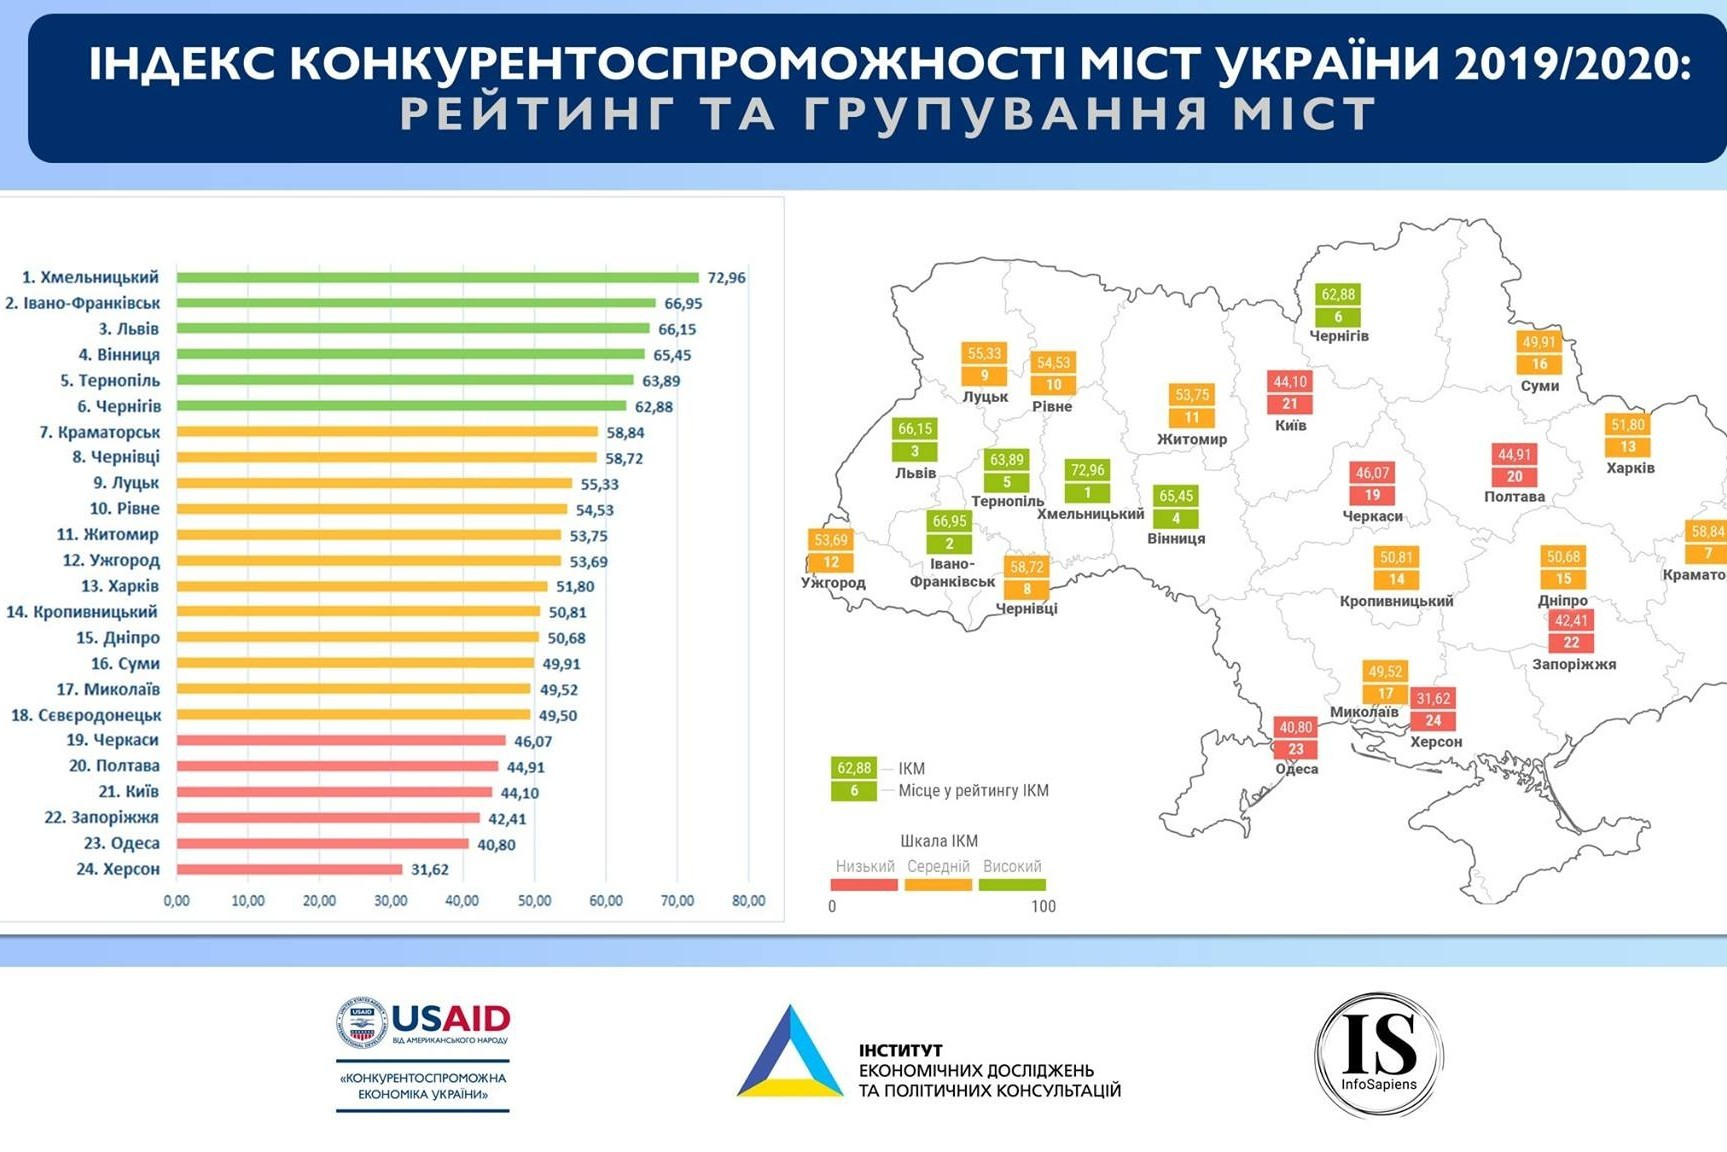 Vinnytsia is recognized as one of the best cities in Ukraine with the most favorable business climate and effective economic governance